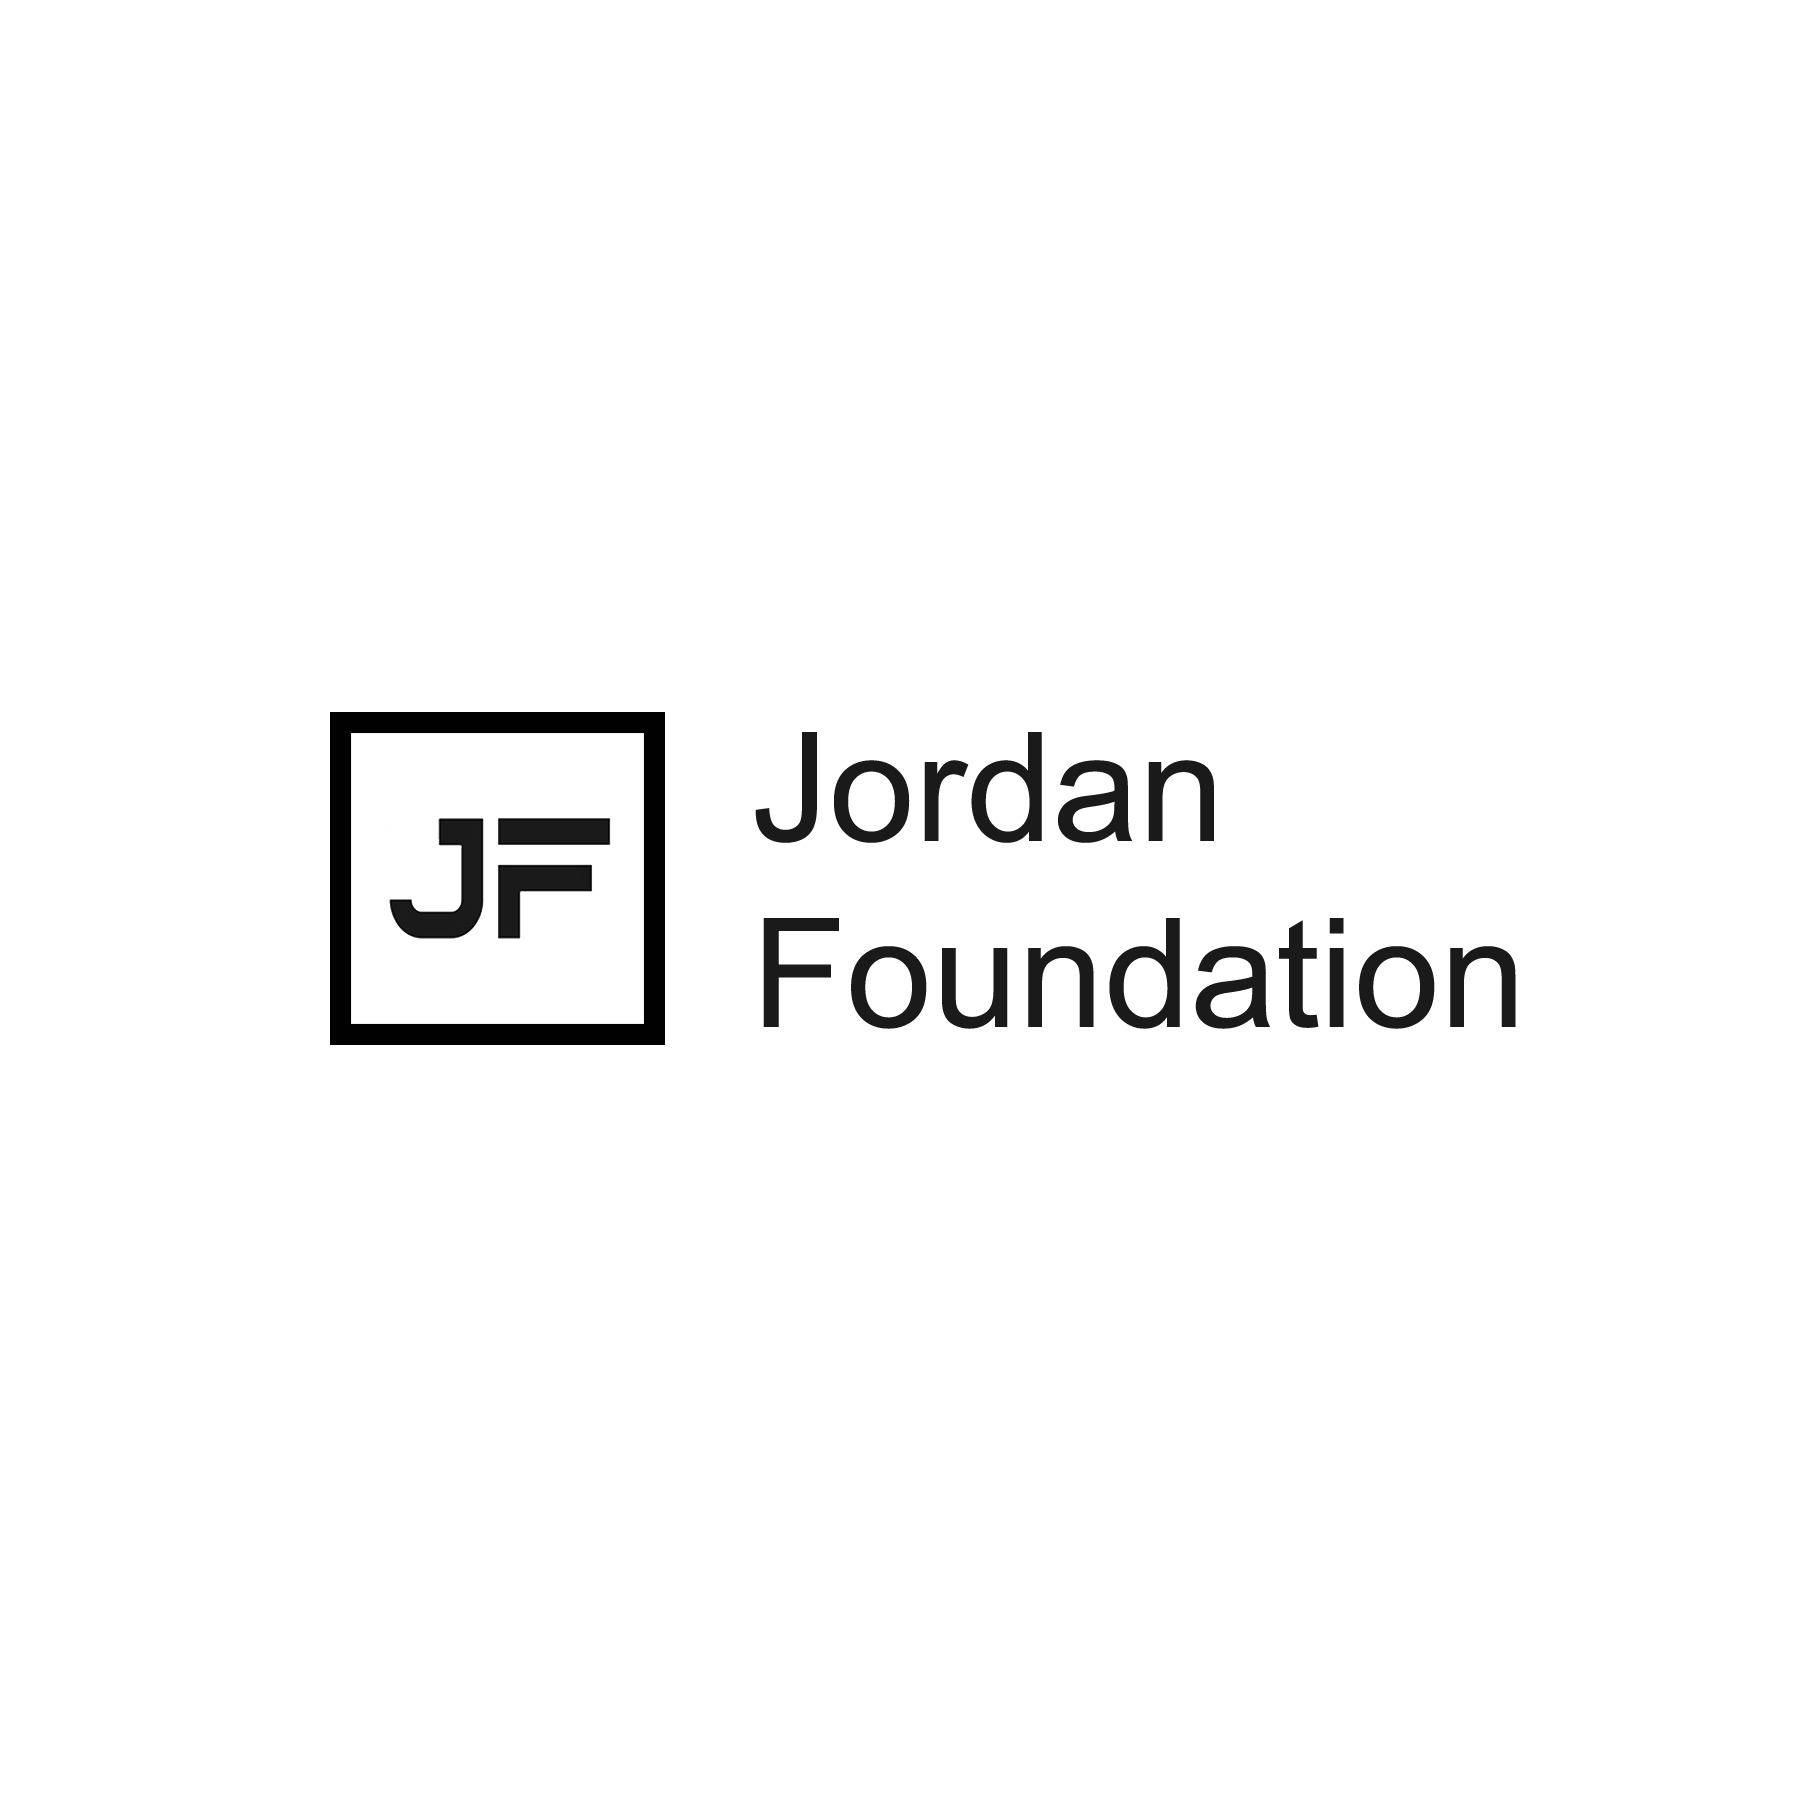 The Jordan Foundation